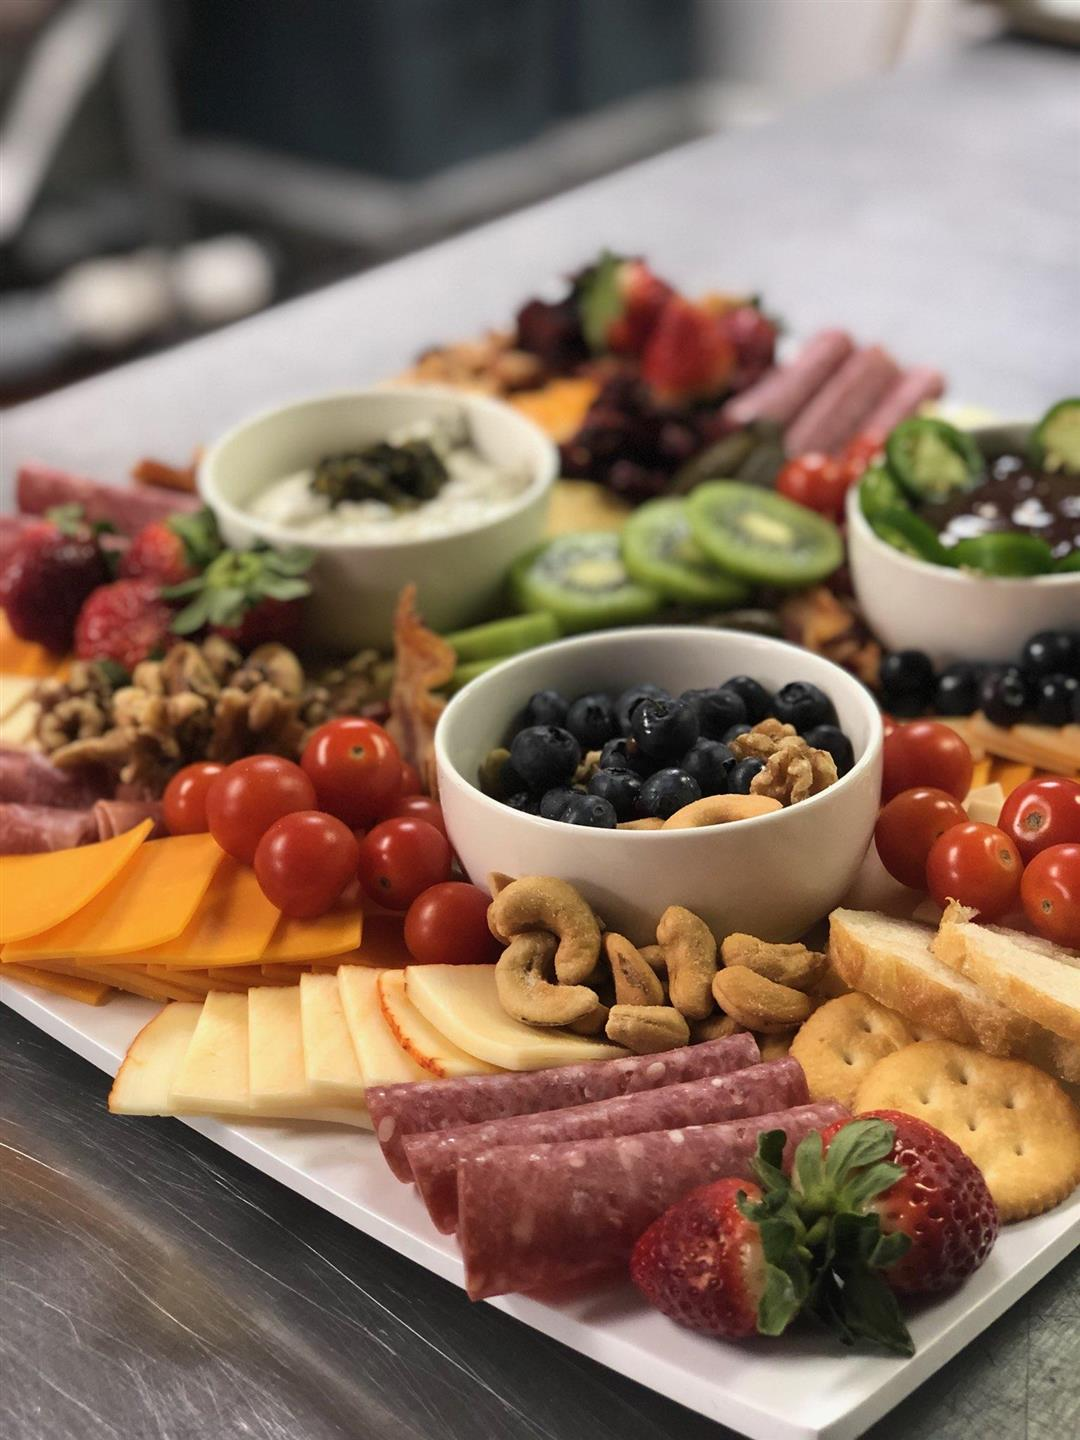 tray with various nuts, fruit, and deli meat